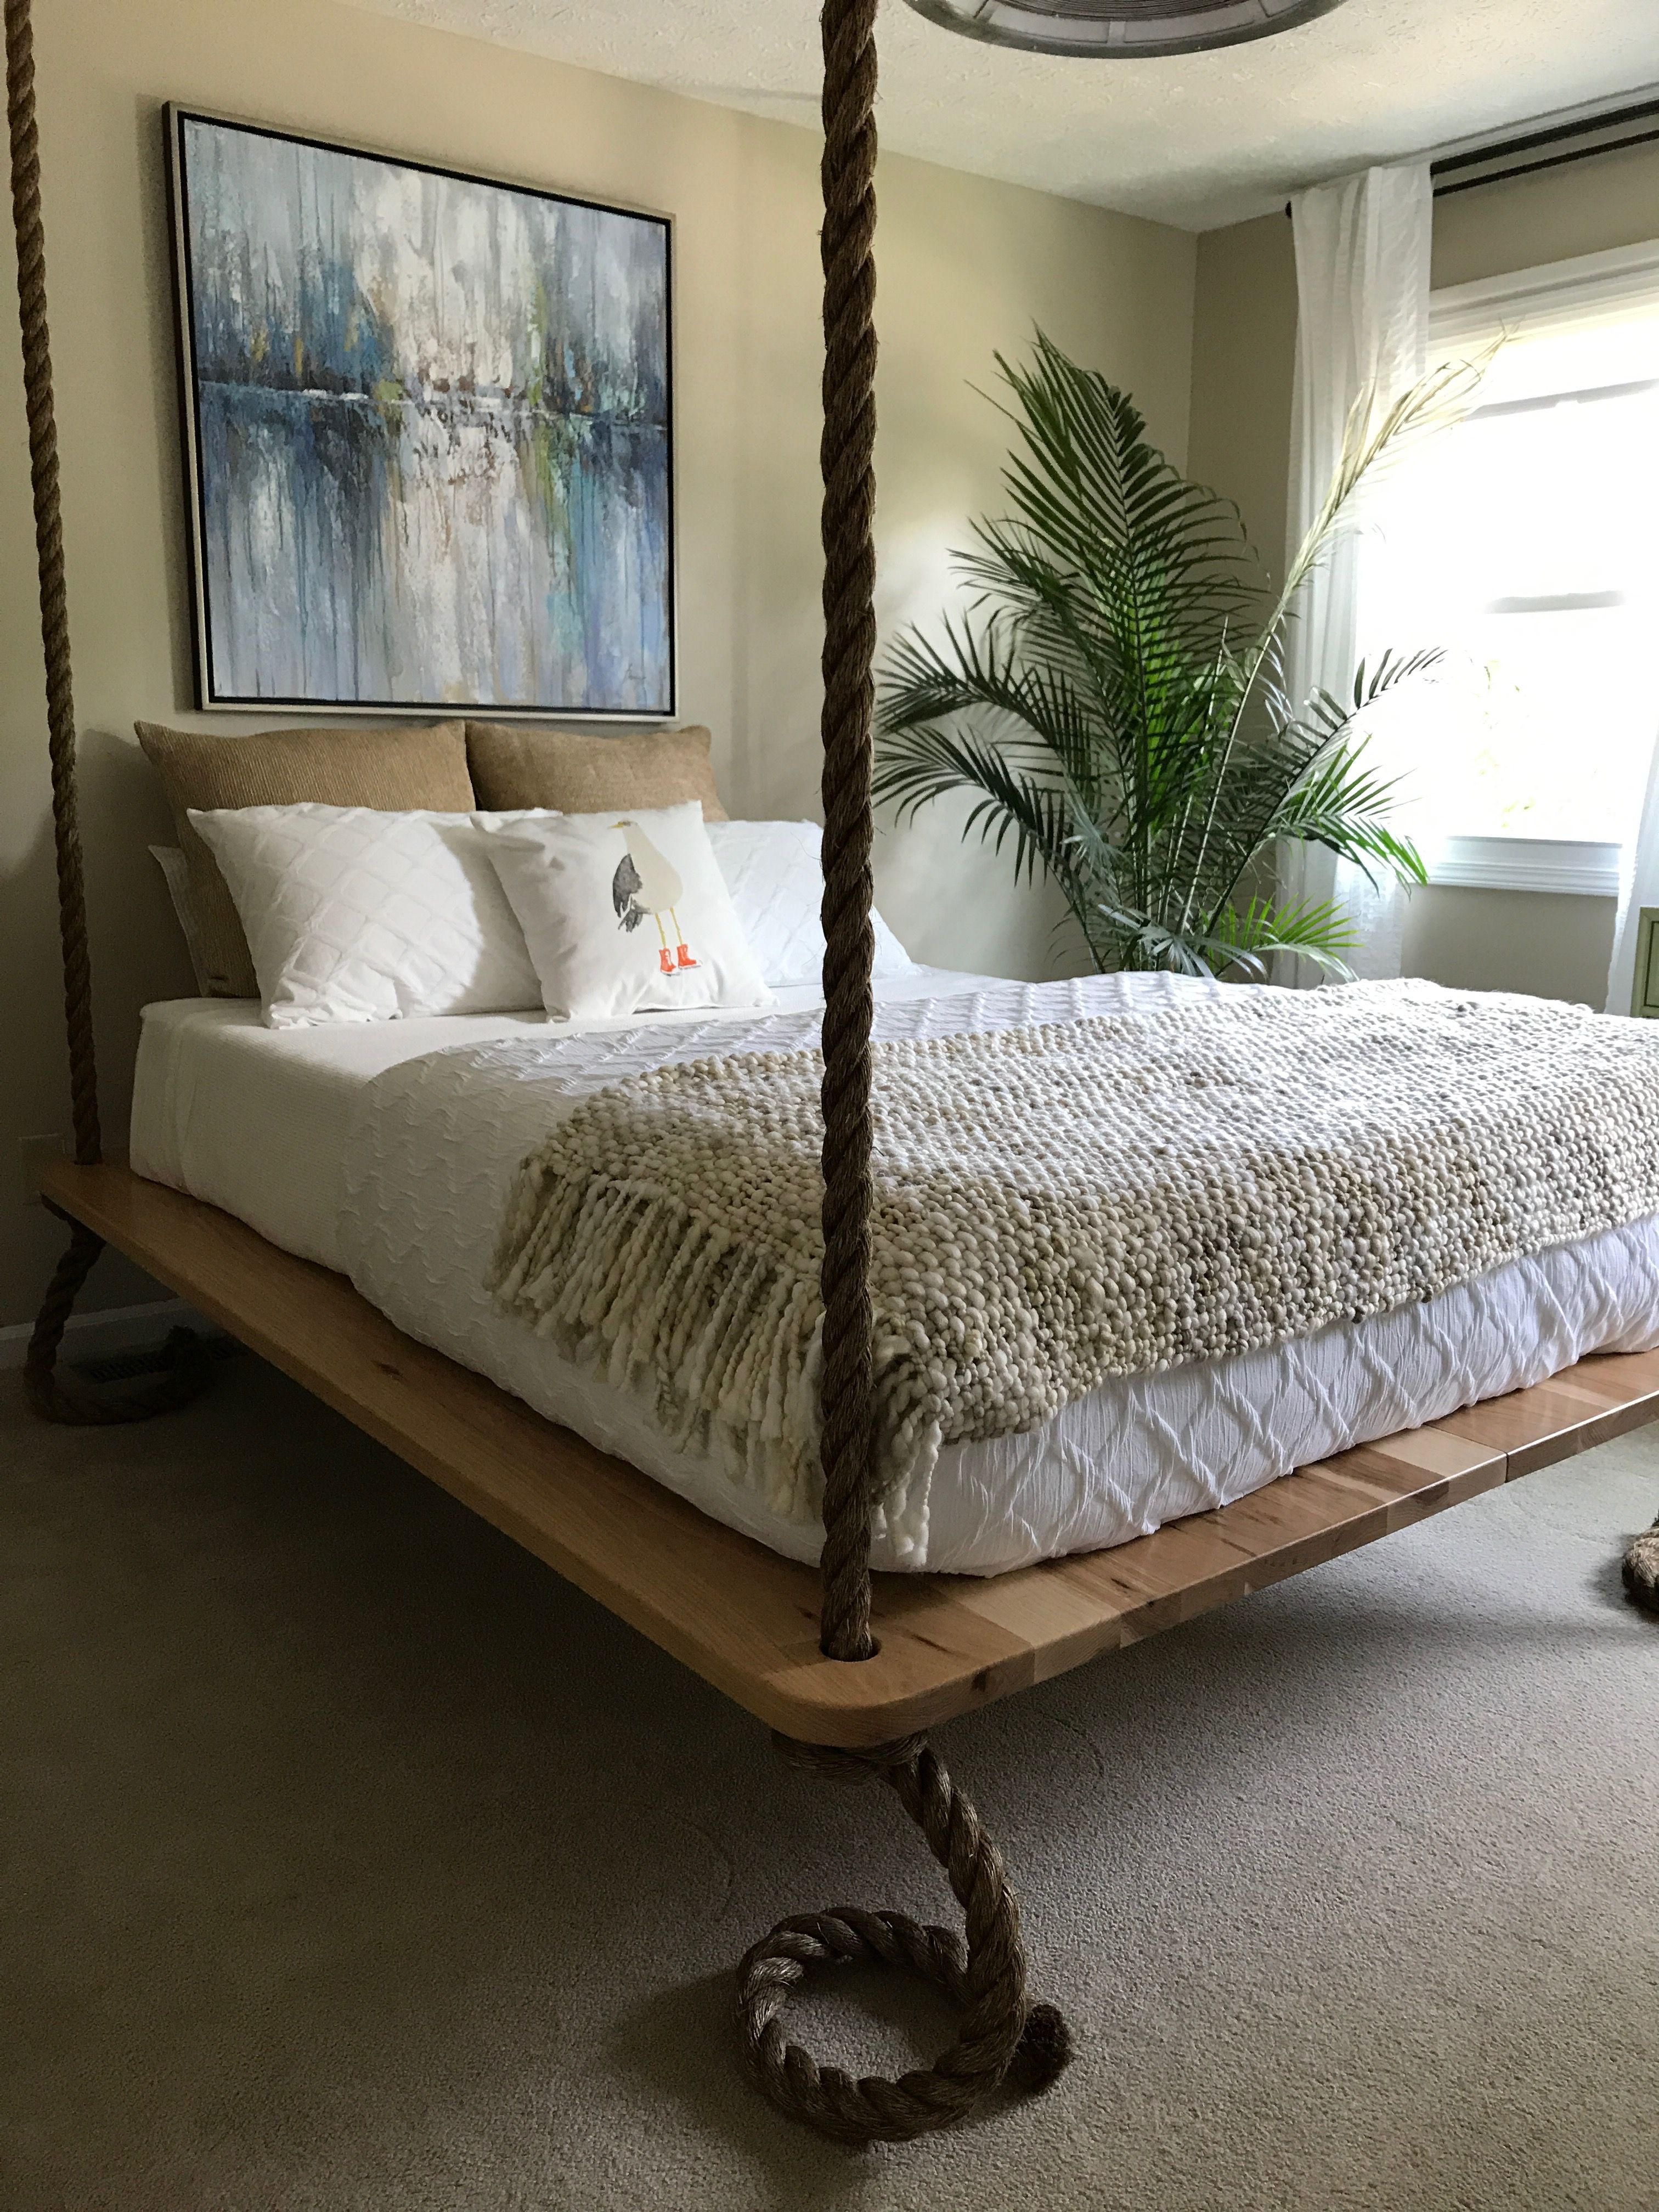 Pin by Janis Wagner on Bed Swing Diy bed, Headboards for